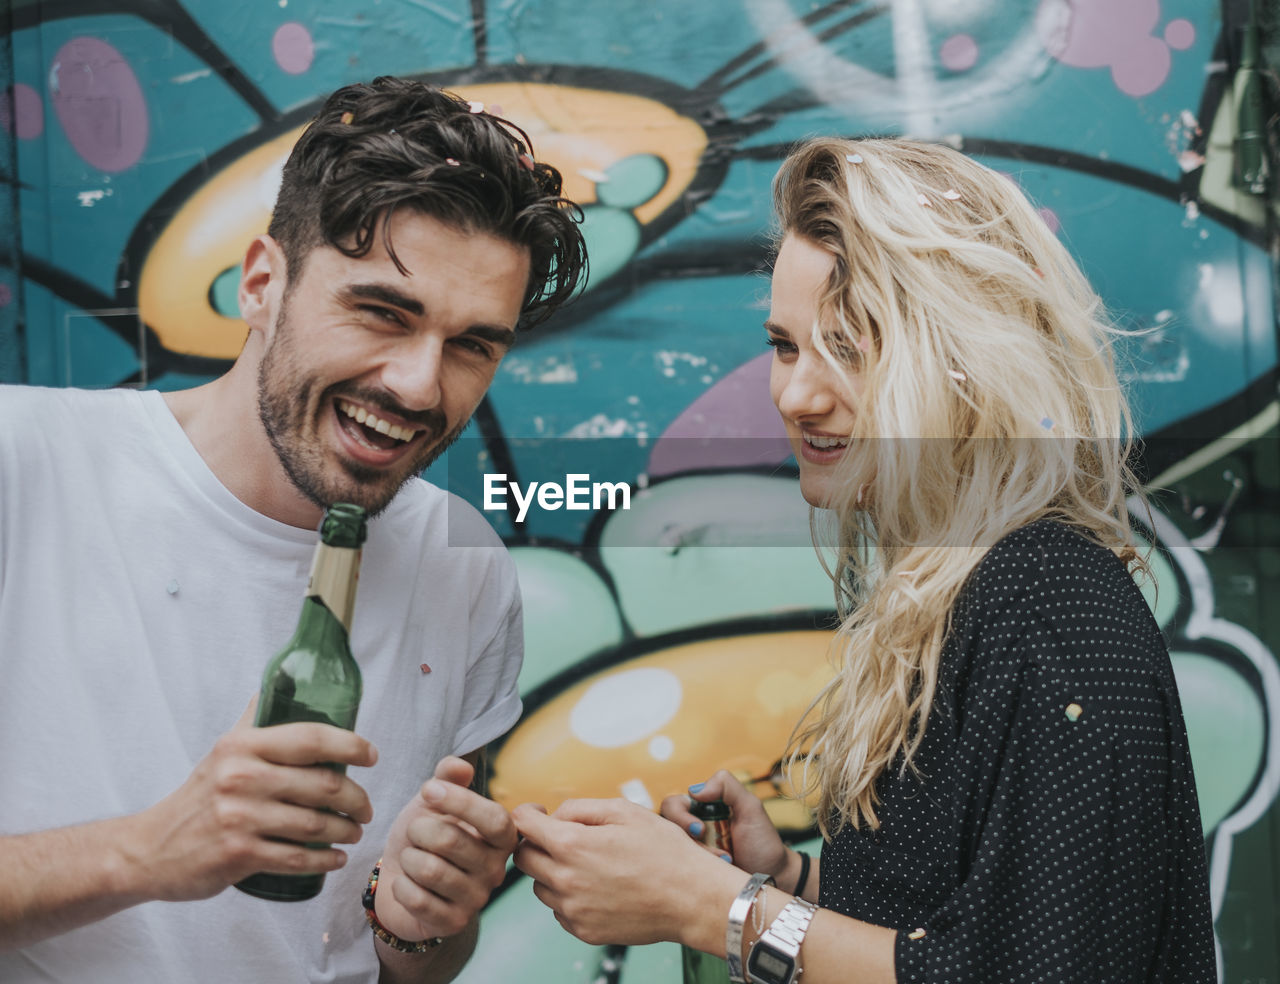 smiling, two people, happiness, young adult, emotion, togetherness, real people, lifestyles, leisure activity, young men, casual clothing, enjoyment, women, young women, hair, men, positive emotion, bonding, couple - relationship, hairstyle